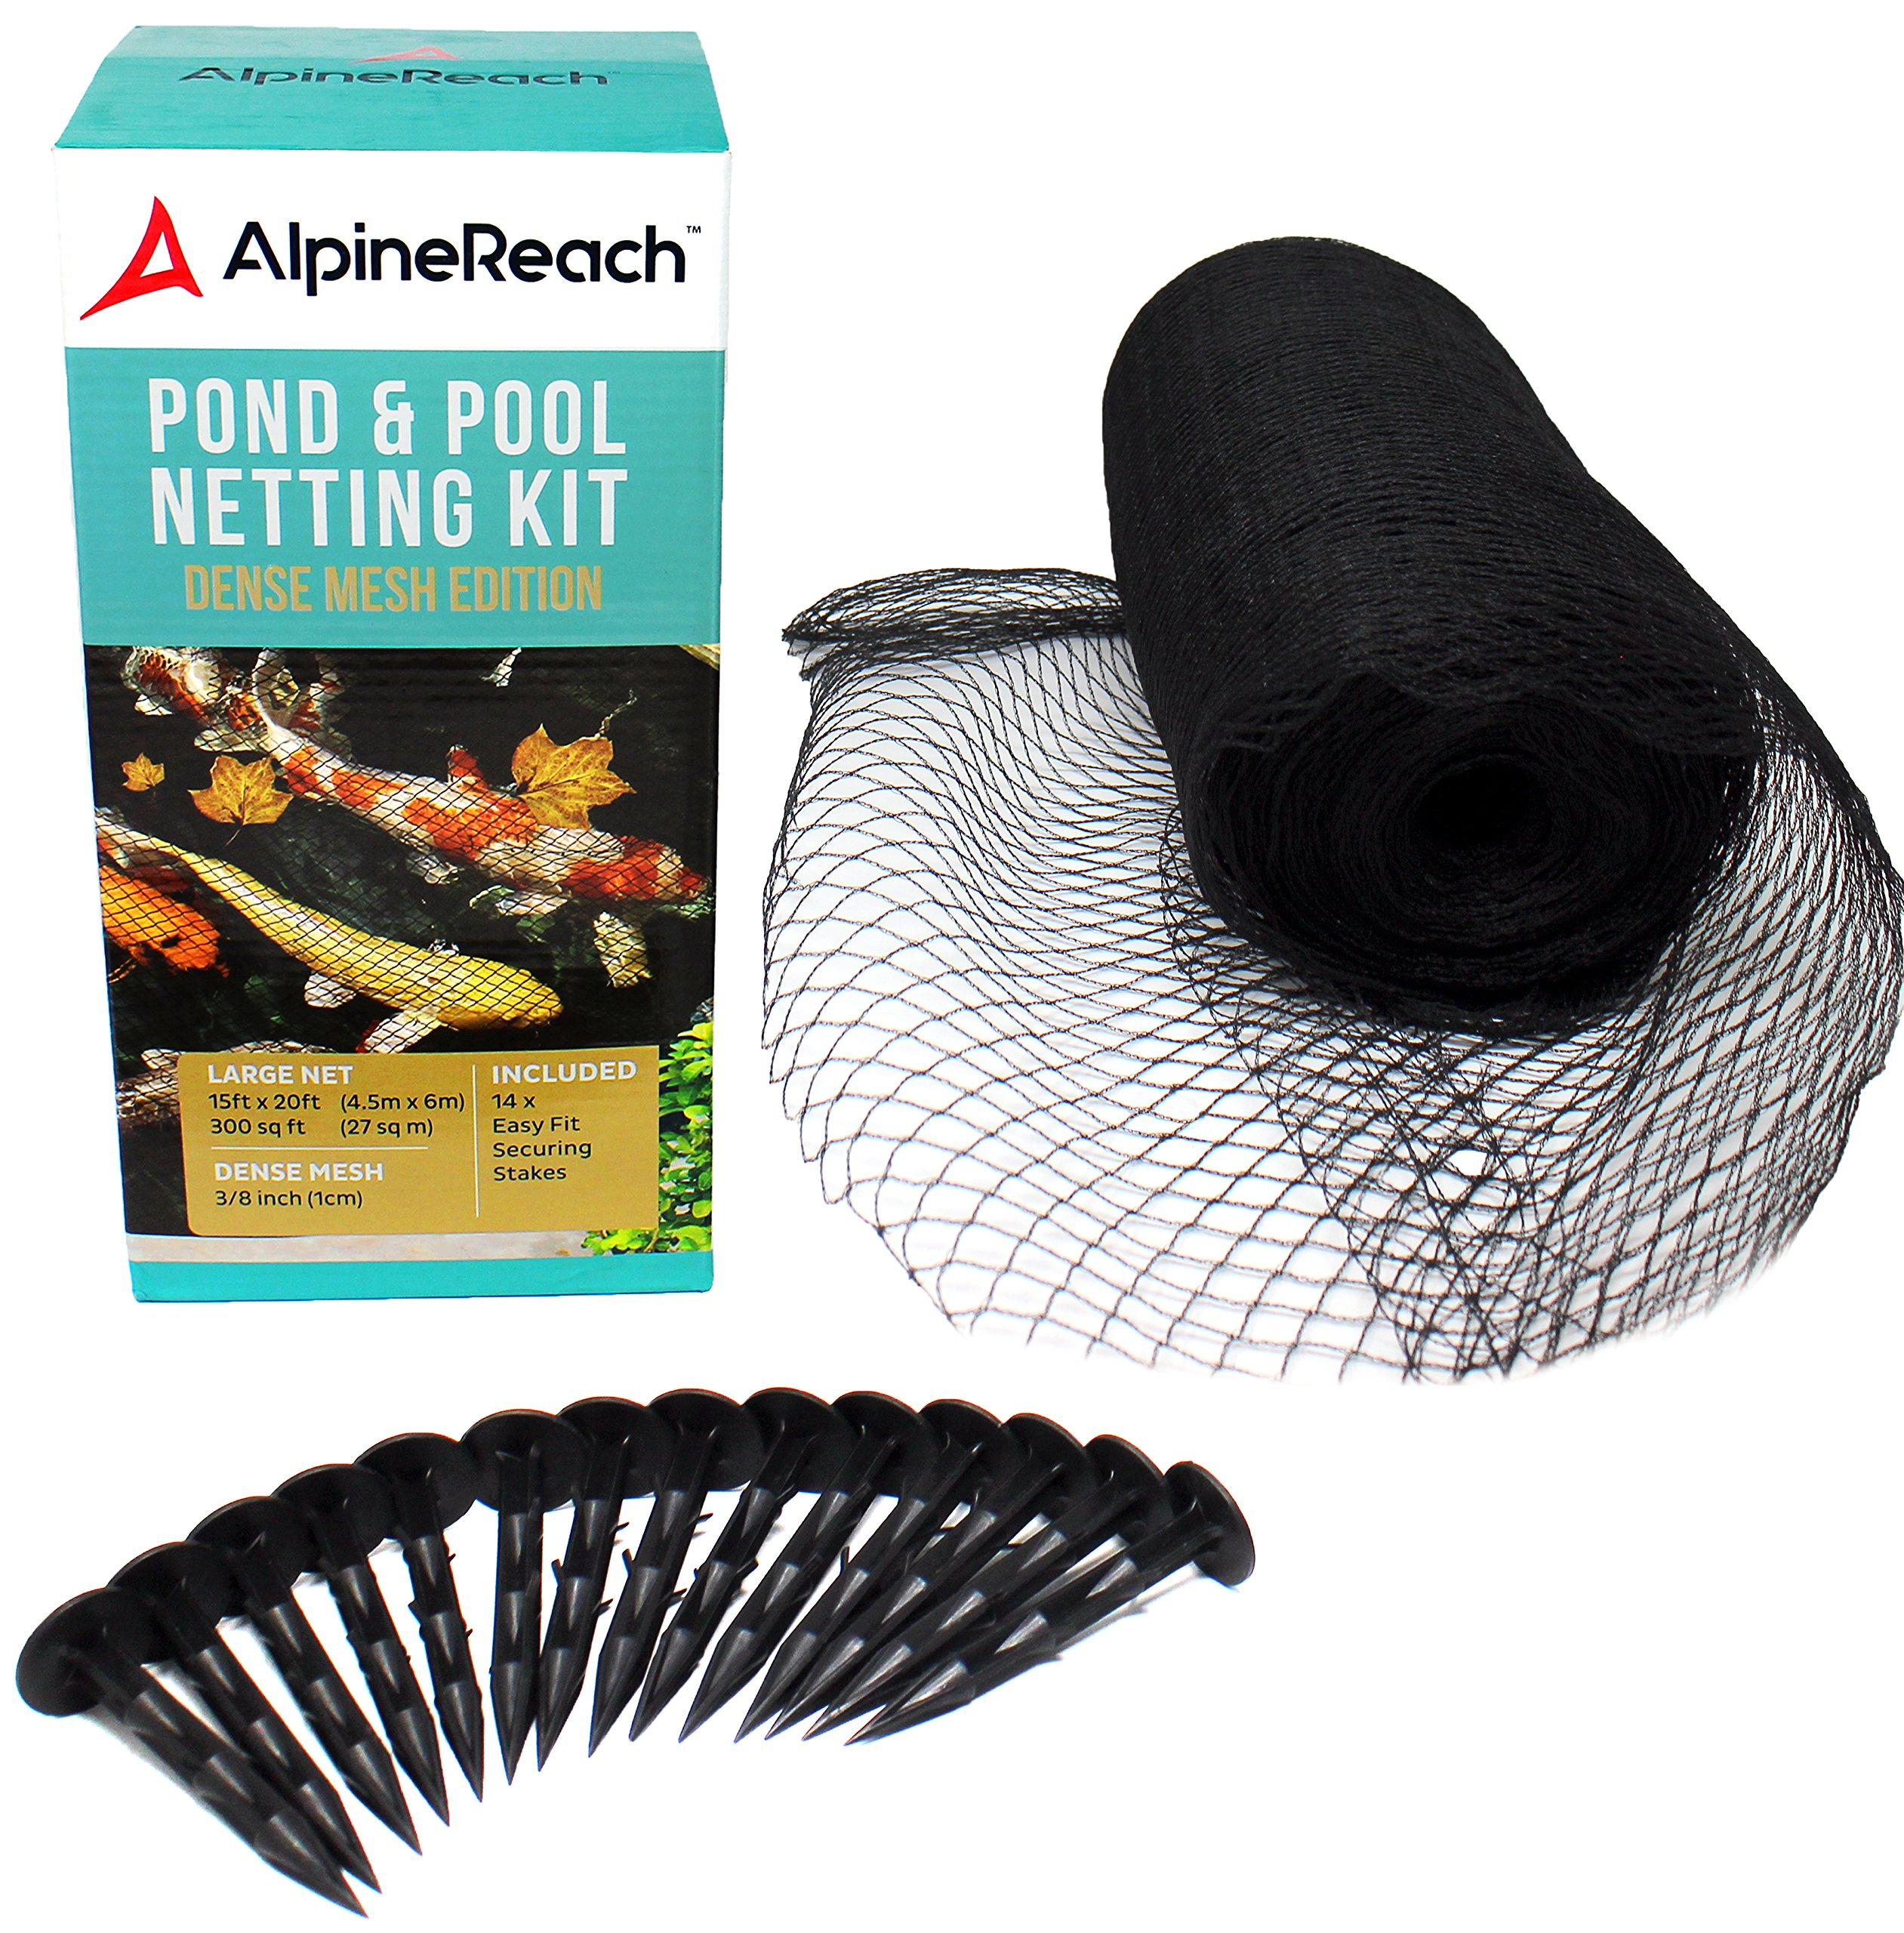 AlpineReach Koi Pond Netting Kit 15 x 20 Feet - Dense Fine Mesh Heavy Duty Stretch Pool Pond Net Cover for Leaves - Protects Koi Fish from Blue Heron Birds Cats Predators UV Protection Stakes Included by AlpineReach